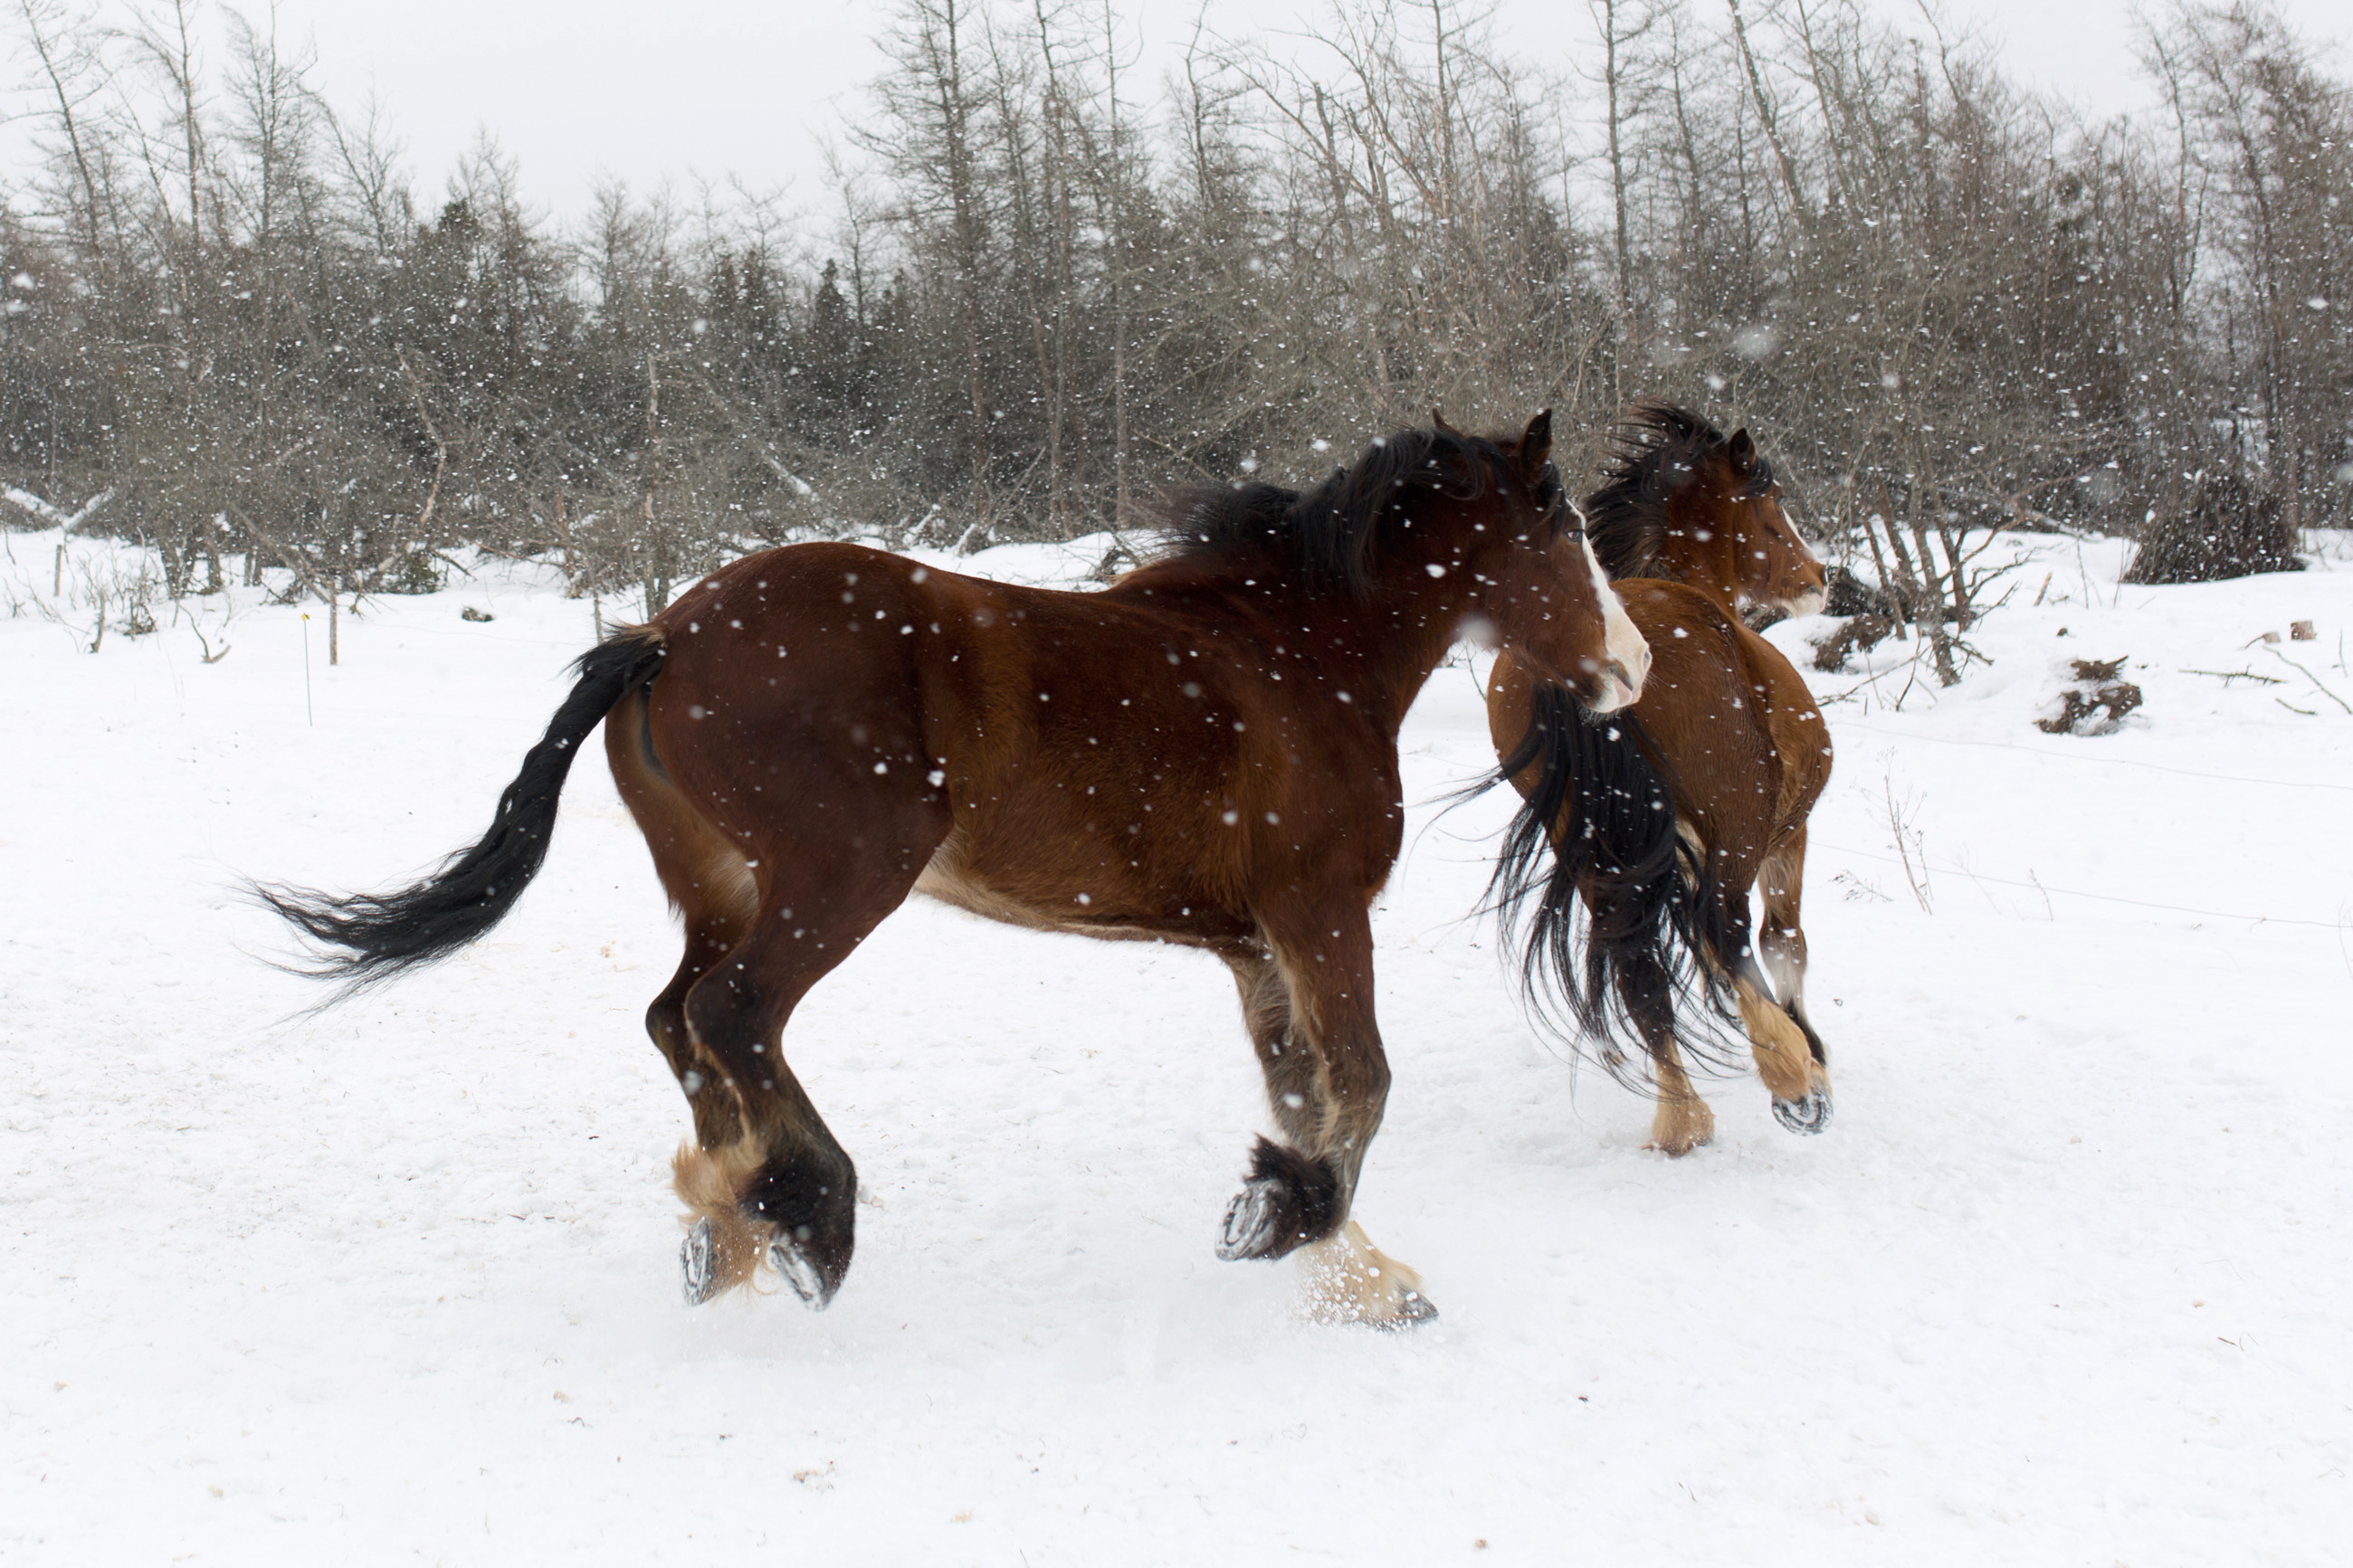 Horses in the snow, Speed, Nature, Orange, Power, HQ Photo